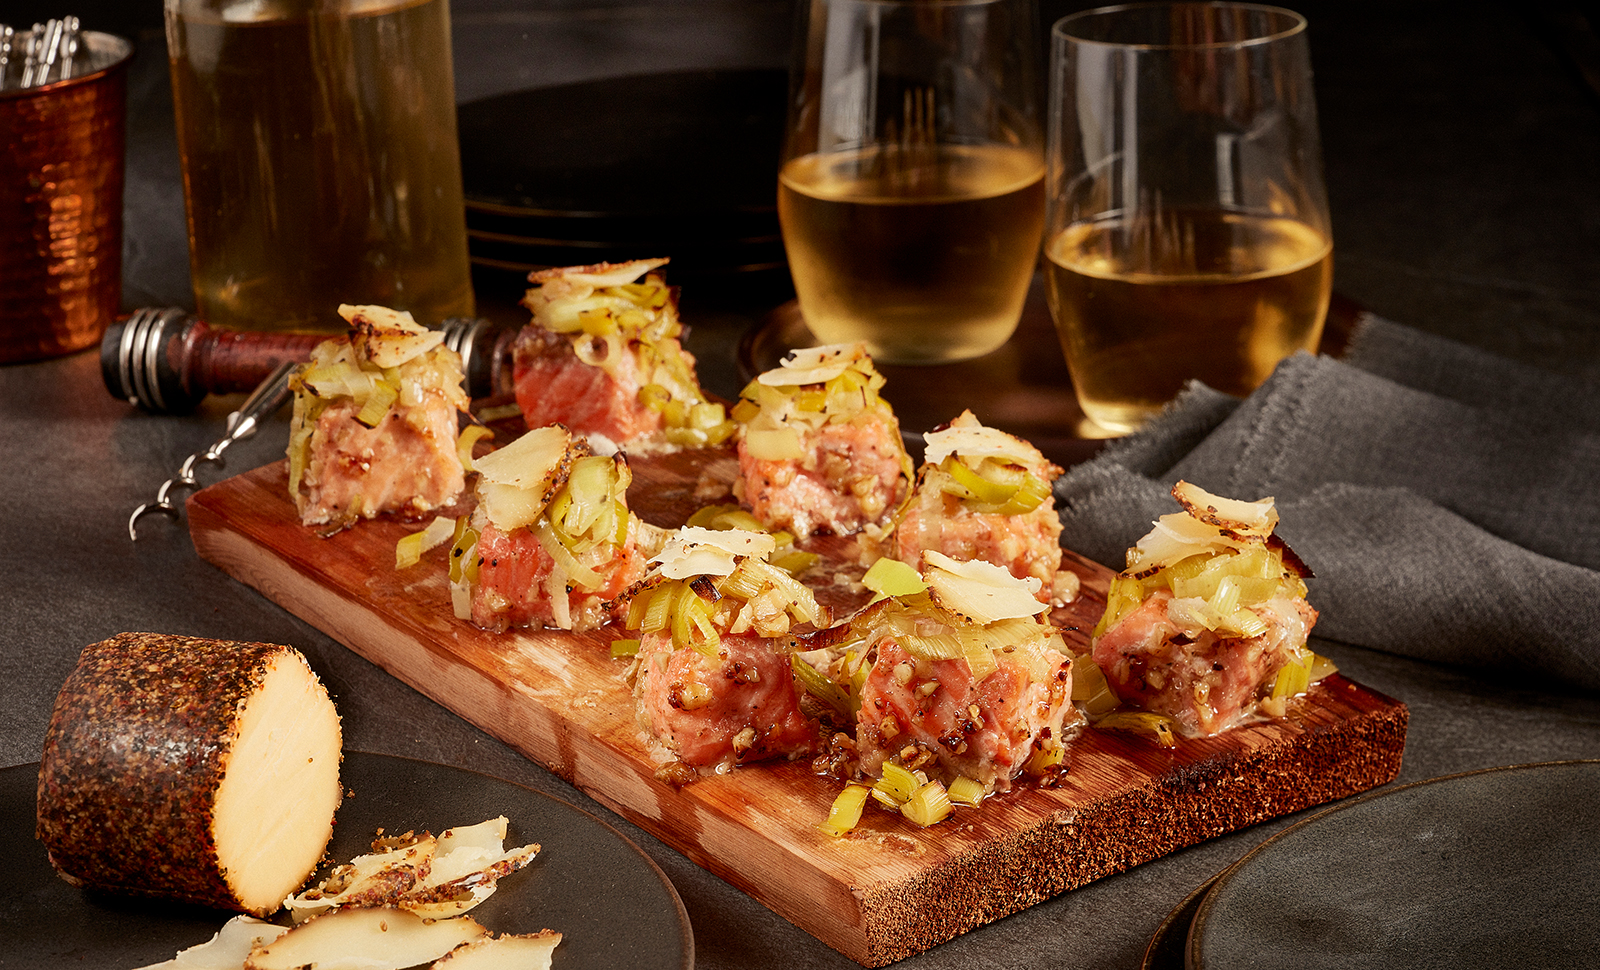 Maple walnut salmon bites served on a cedar plank with two glasses of white wine and Maple Cheddar with cracked black pepper cheese log.